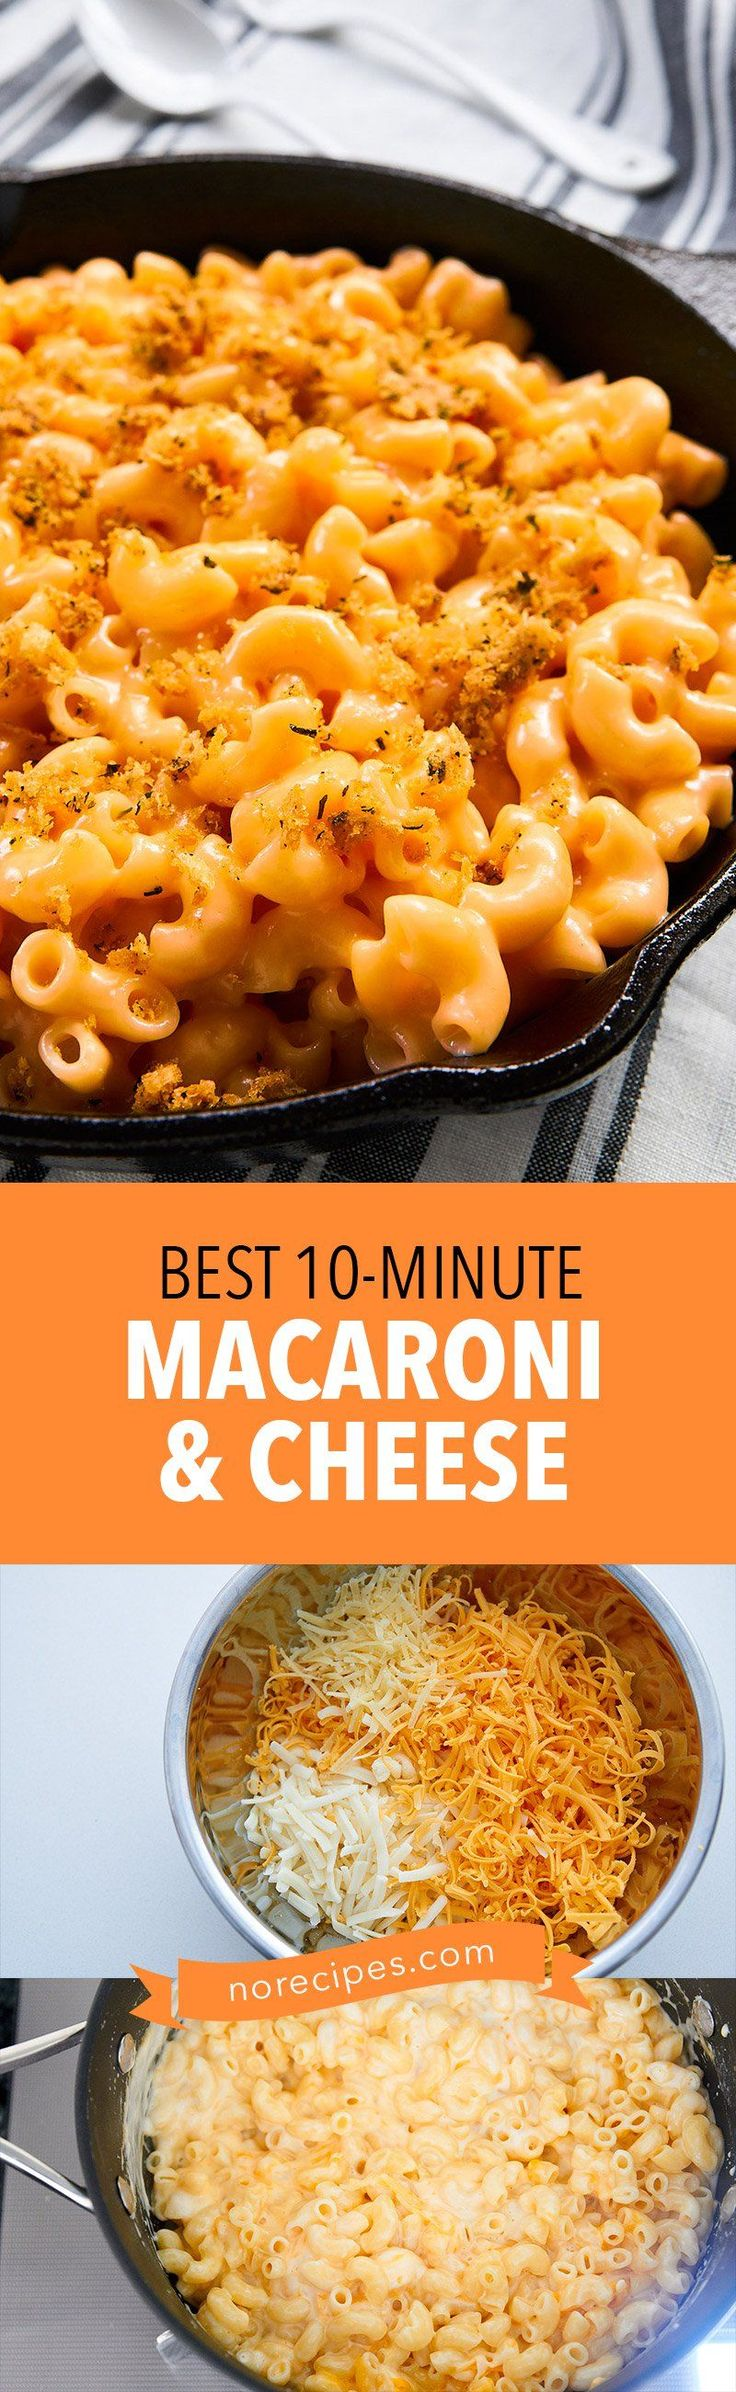 With a crisp cheesy topping and perfectly cooked macaroni in a satiny smooth sauce, no-one will believe this Mac and Cheese only took 10 minutes to make!